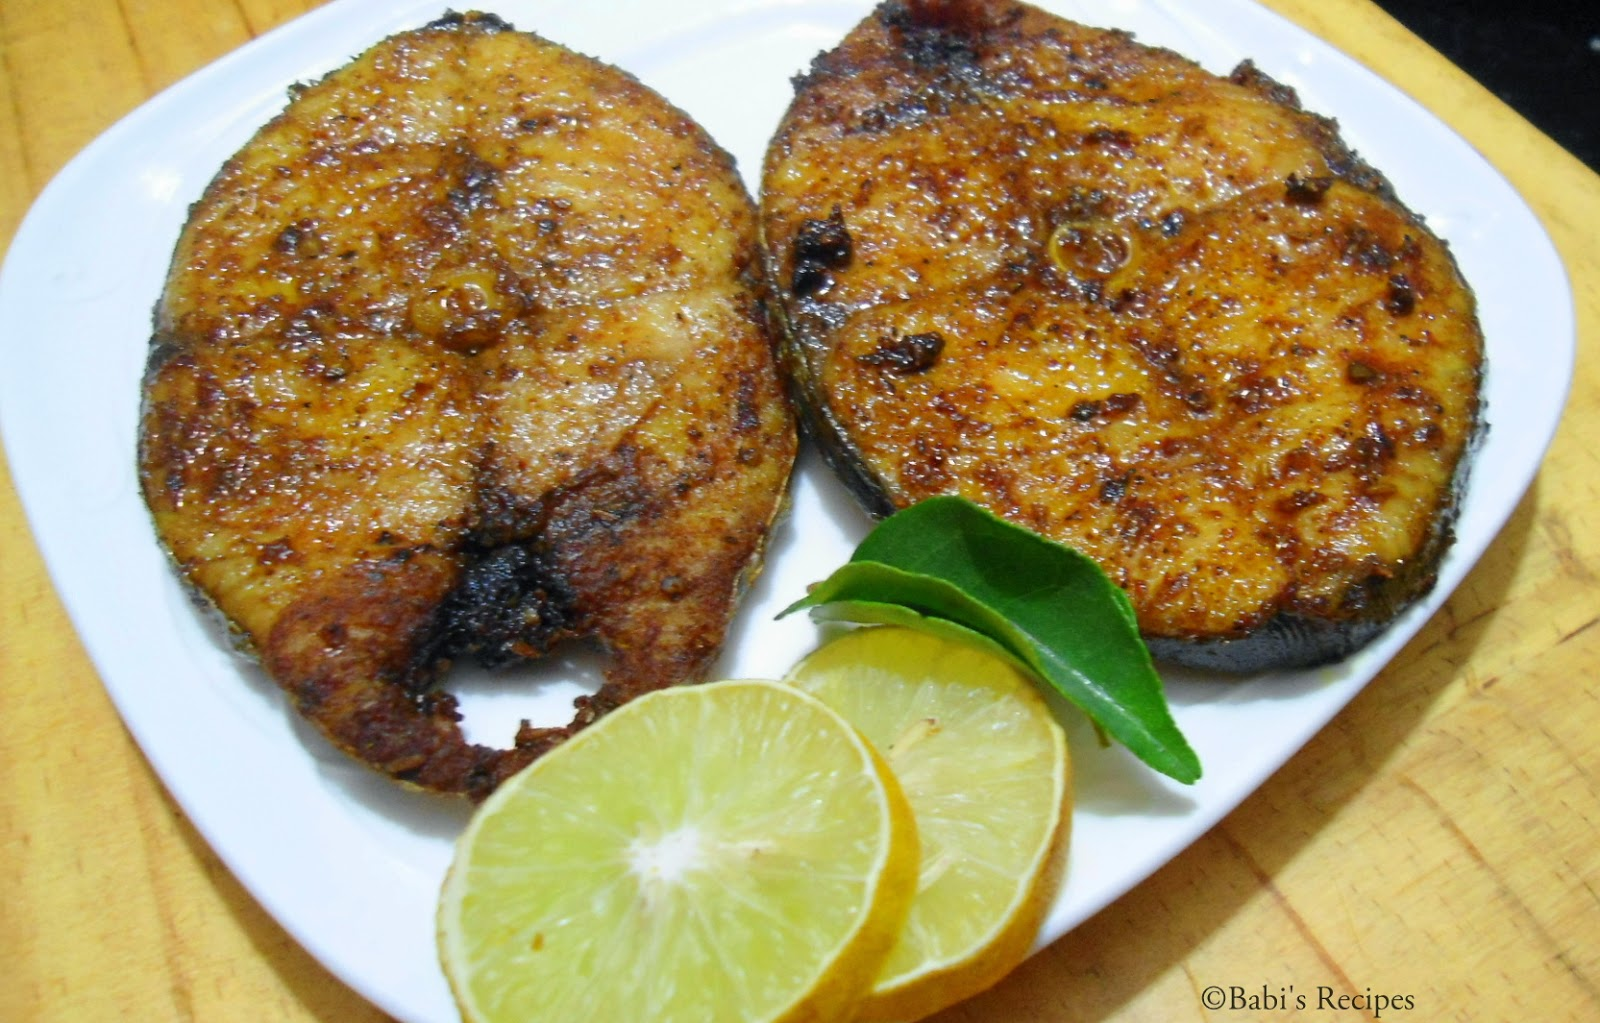 babi 39 s recipes king fish fry vanjaram meen varuval